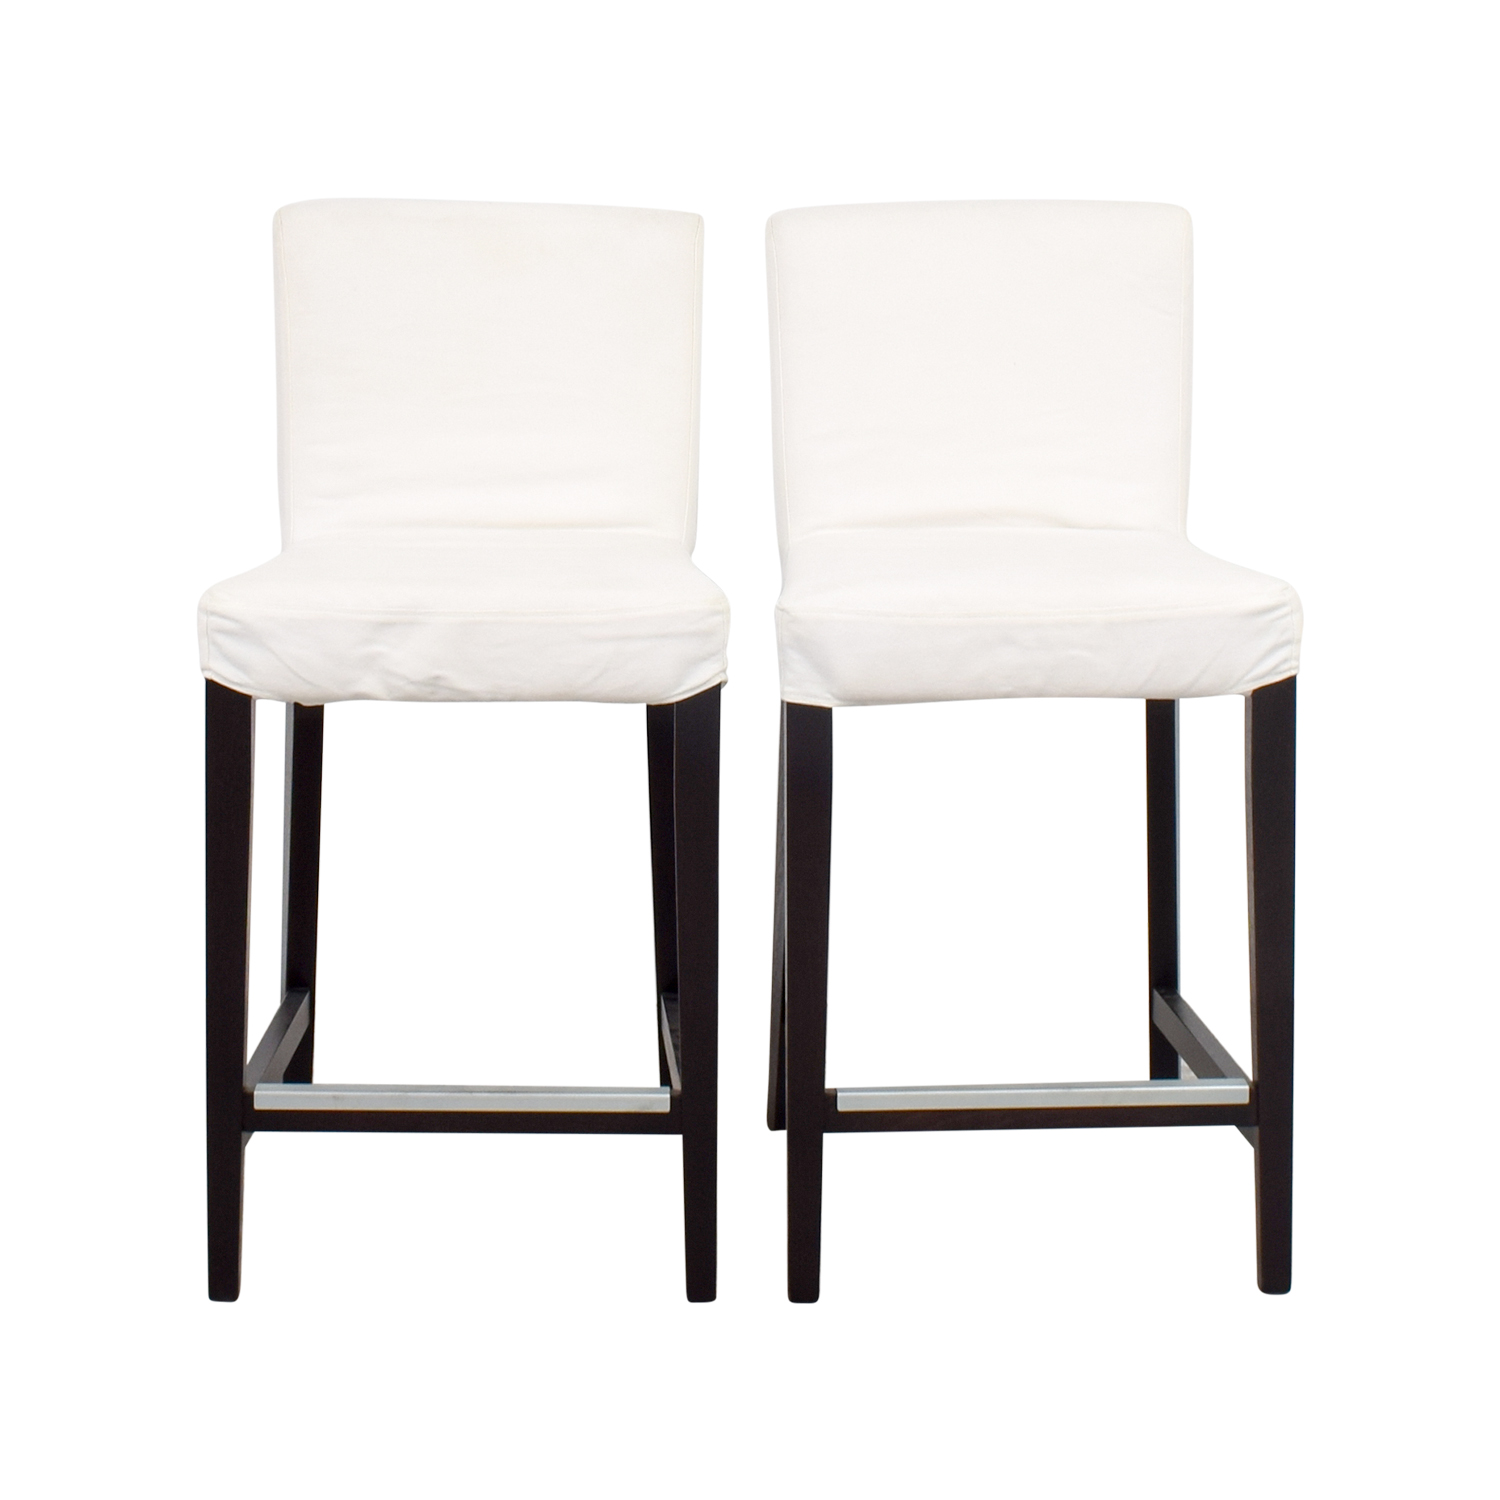 Ikea henriksdal white covered bar stools stools with for Chaises scandinaves ikea